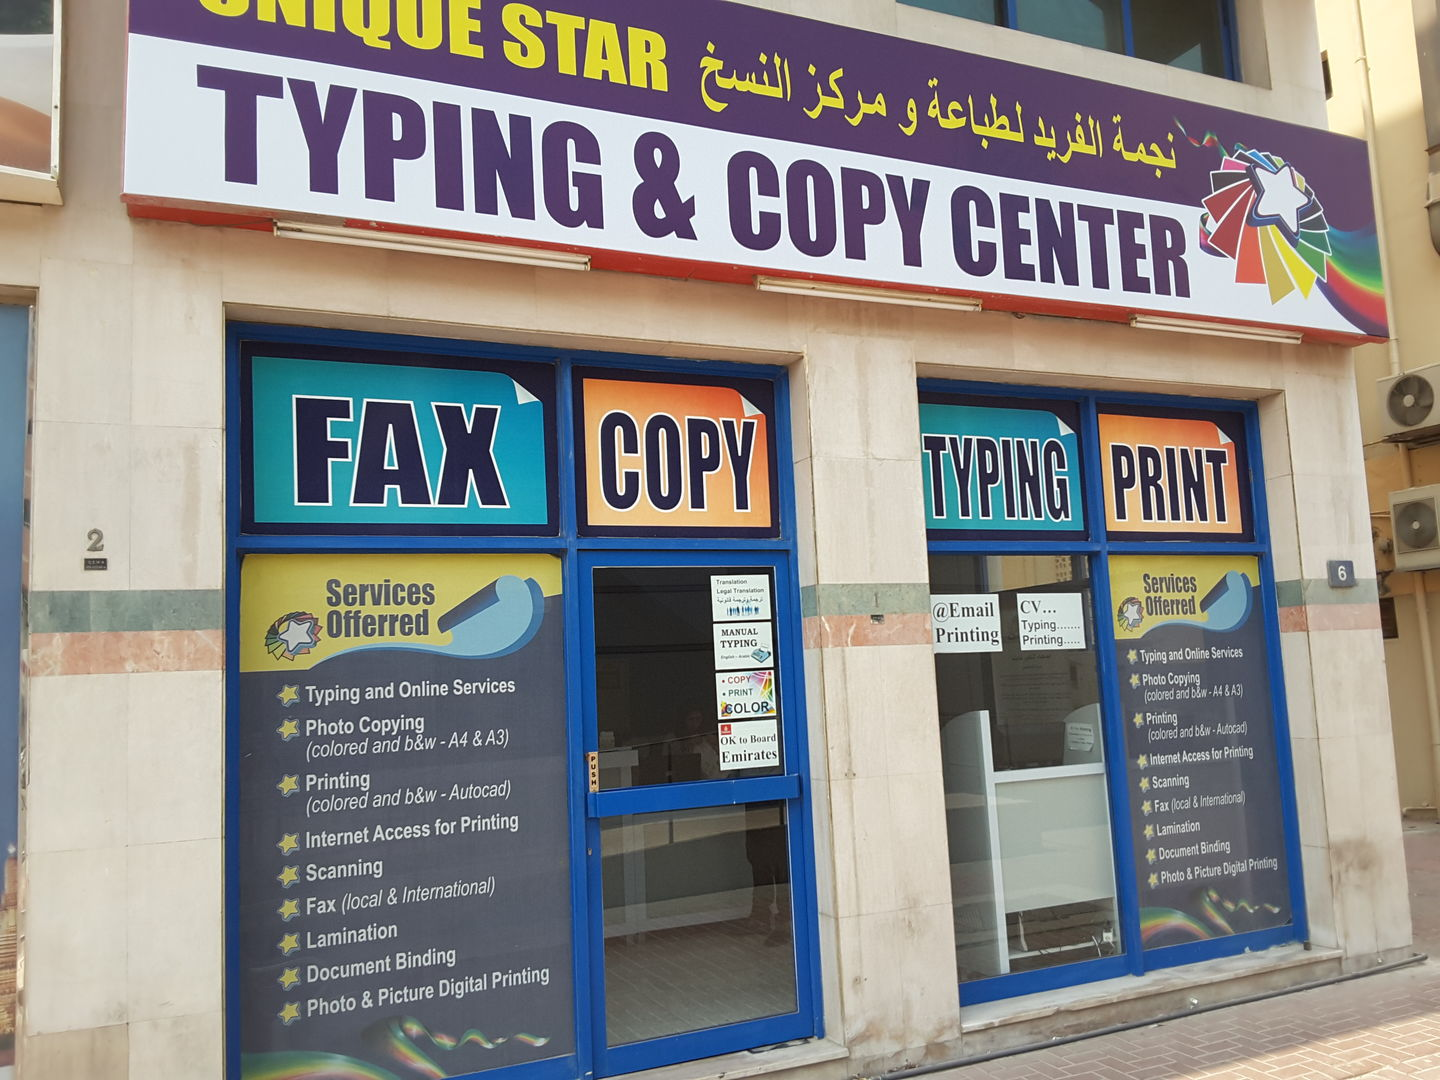 HiDubai-business-unique-star-typing-and-copy-center-b2b-services-printing-typing-services-al-khabaisi-dubai-2